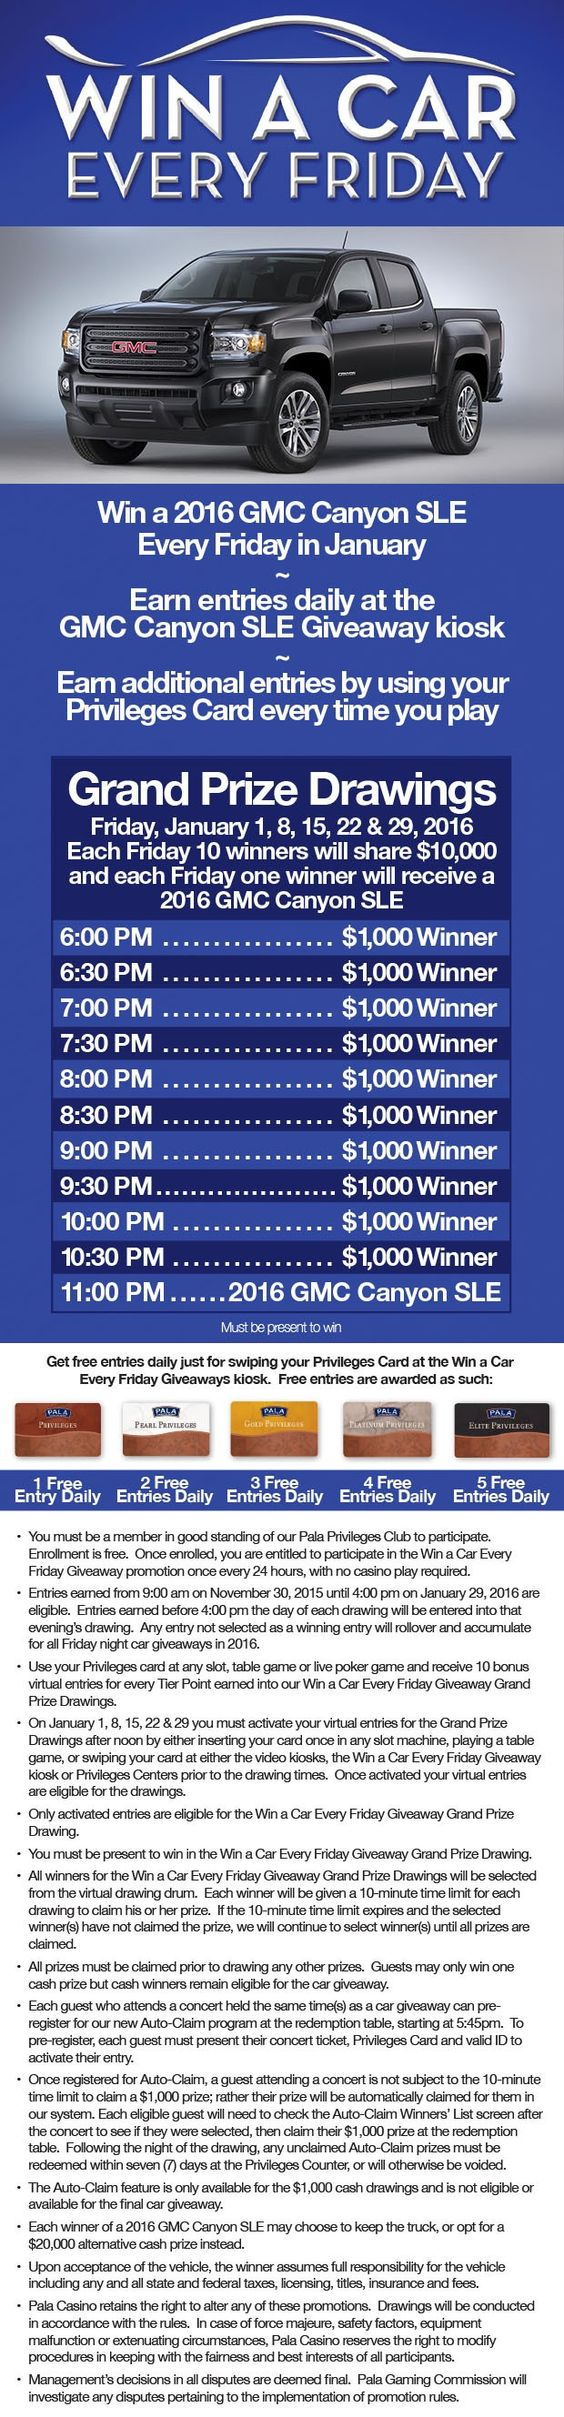 Win A Car Every Friday Giveaway With Images Gmc Canyon 2016